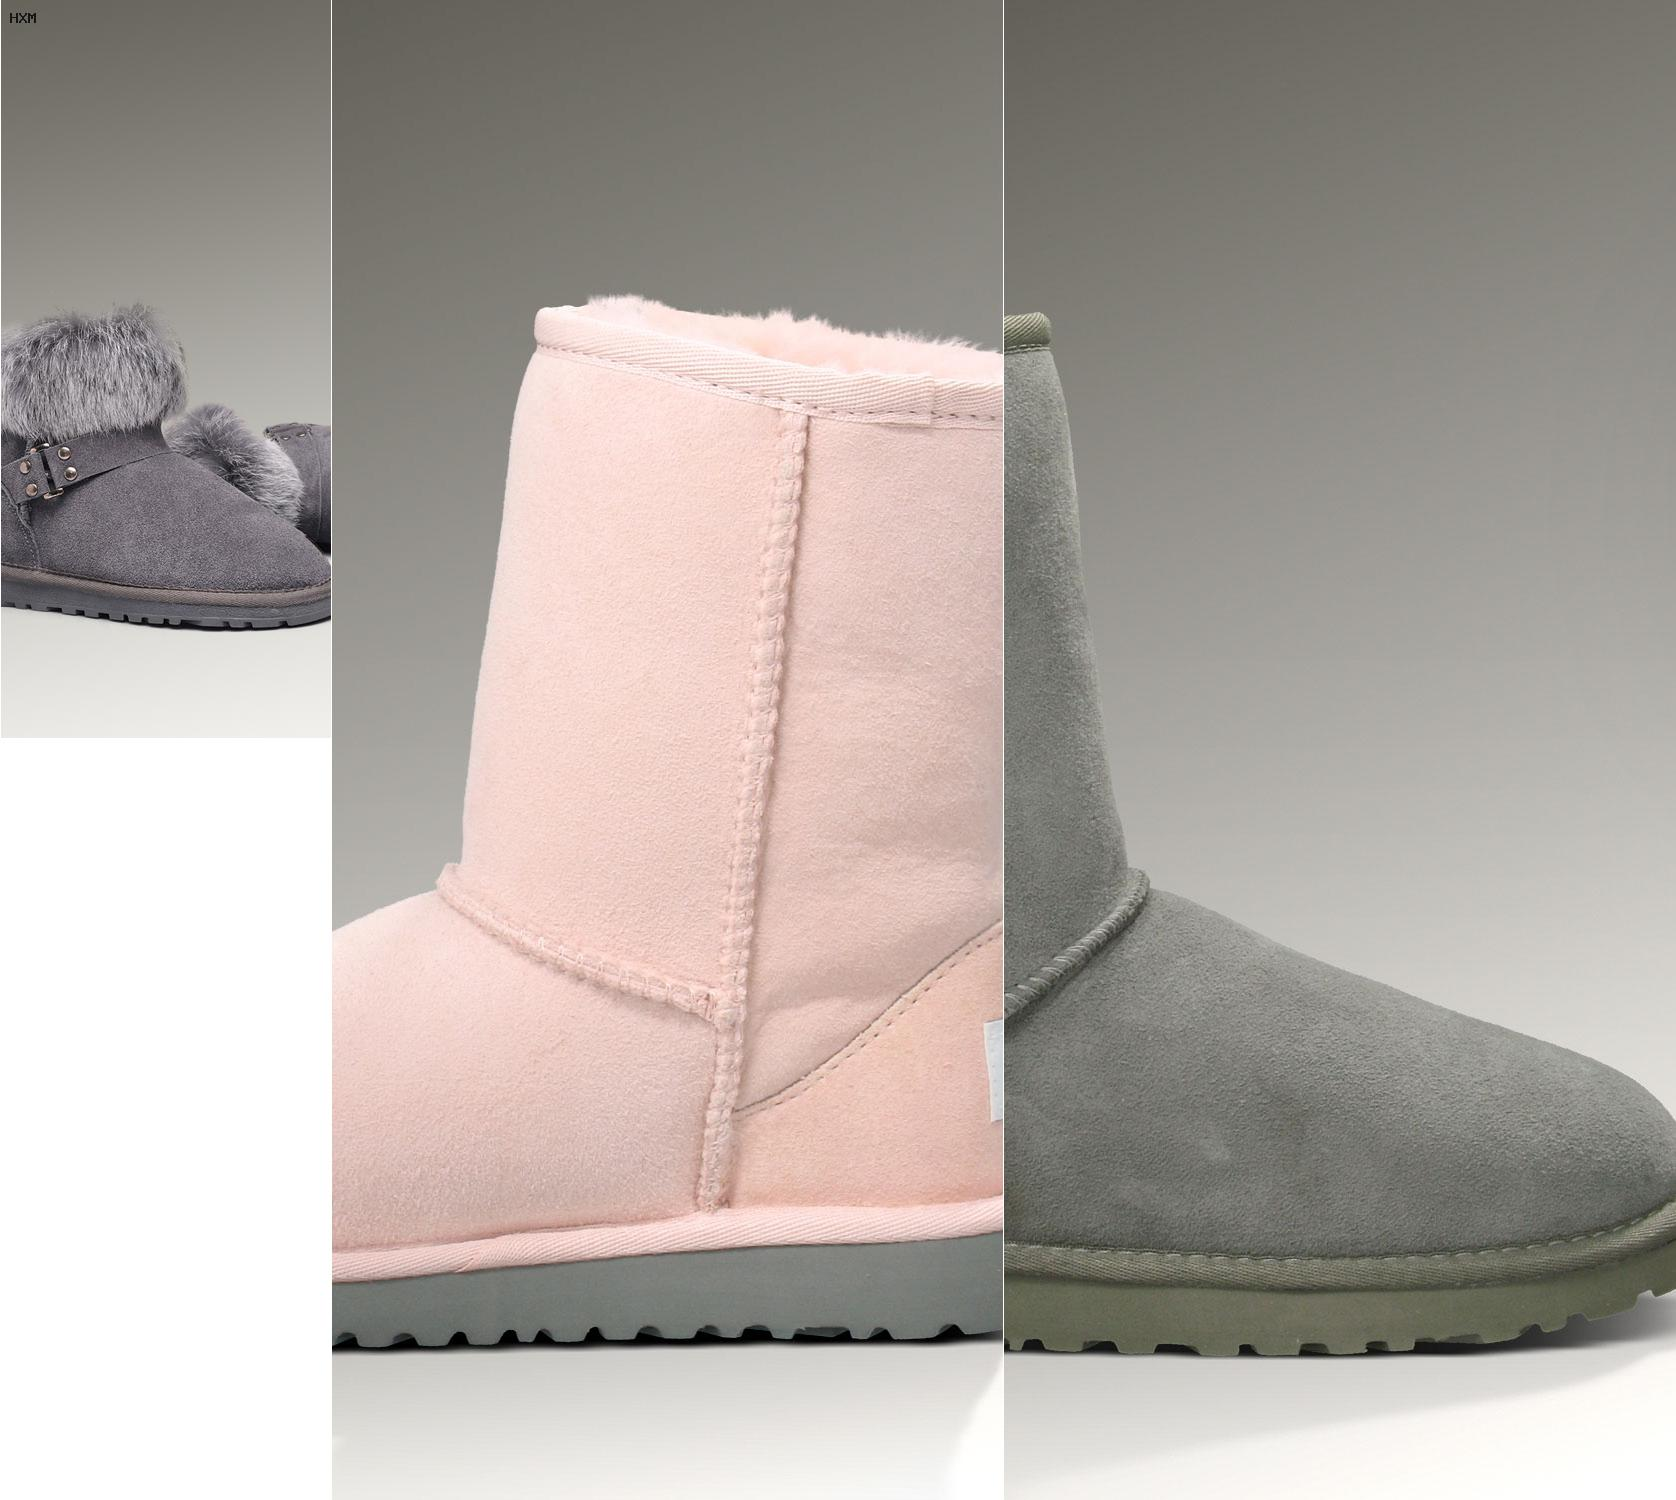 magasin ugg paris champs elysee